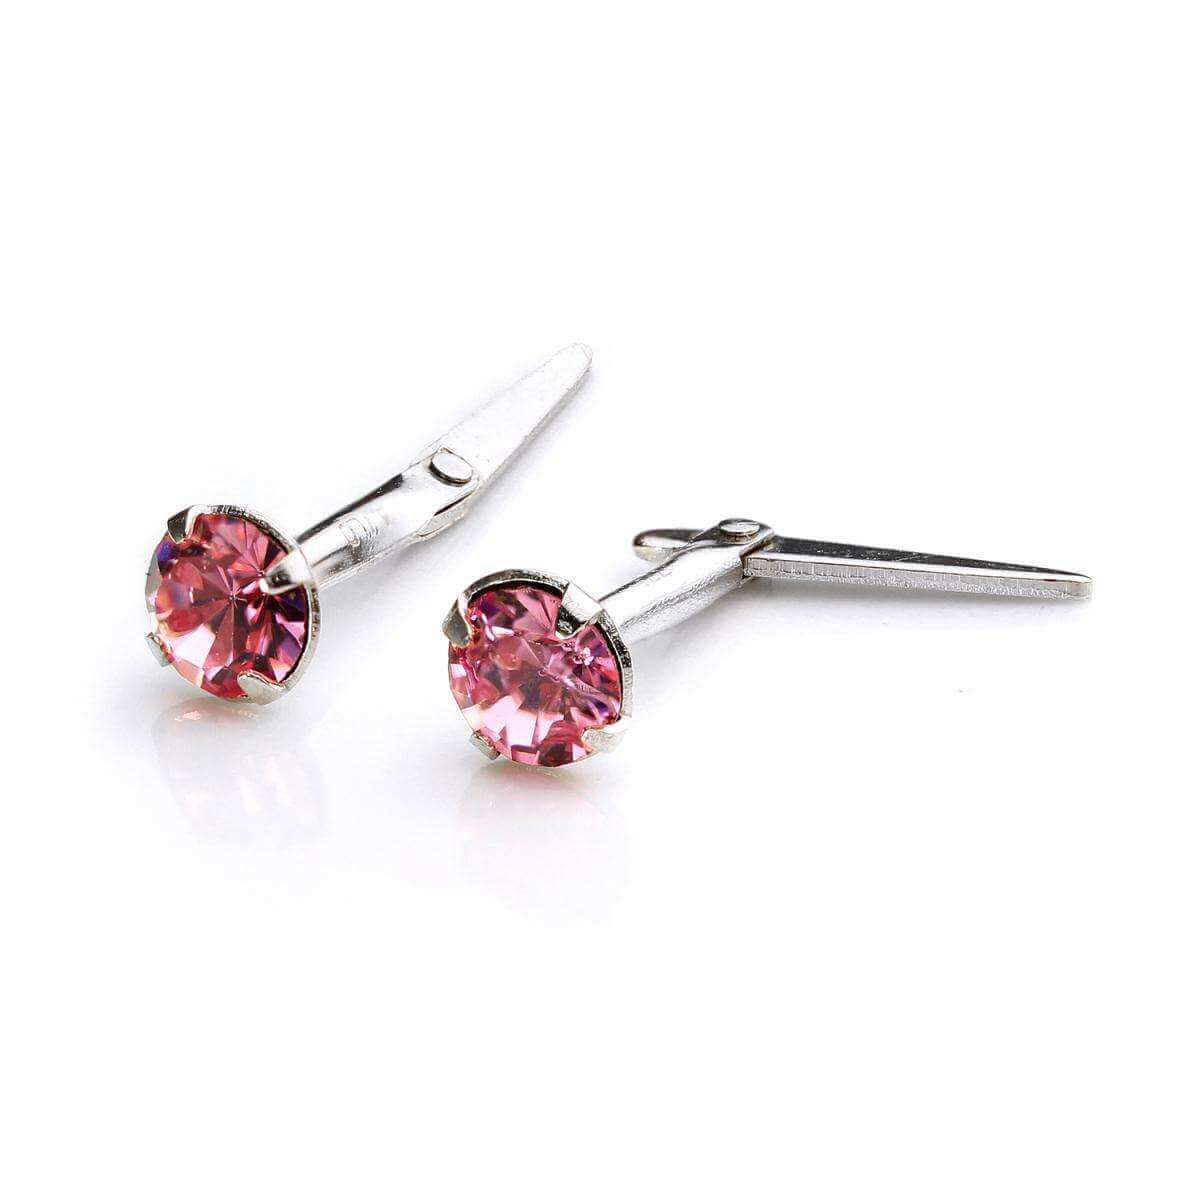 Sterling Silver Andralok Stud Earrings with 3mm Light Rose Crystal